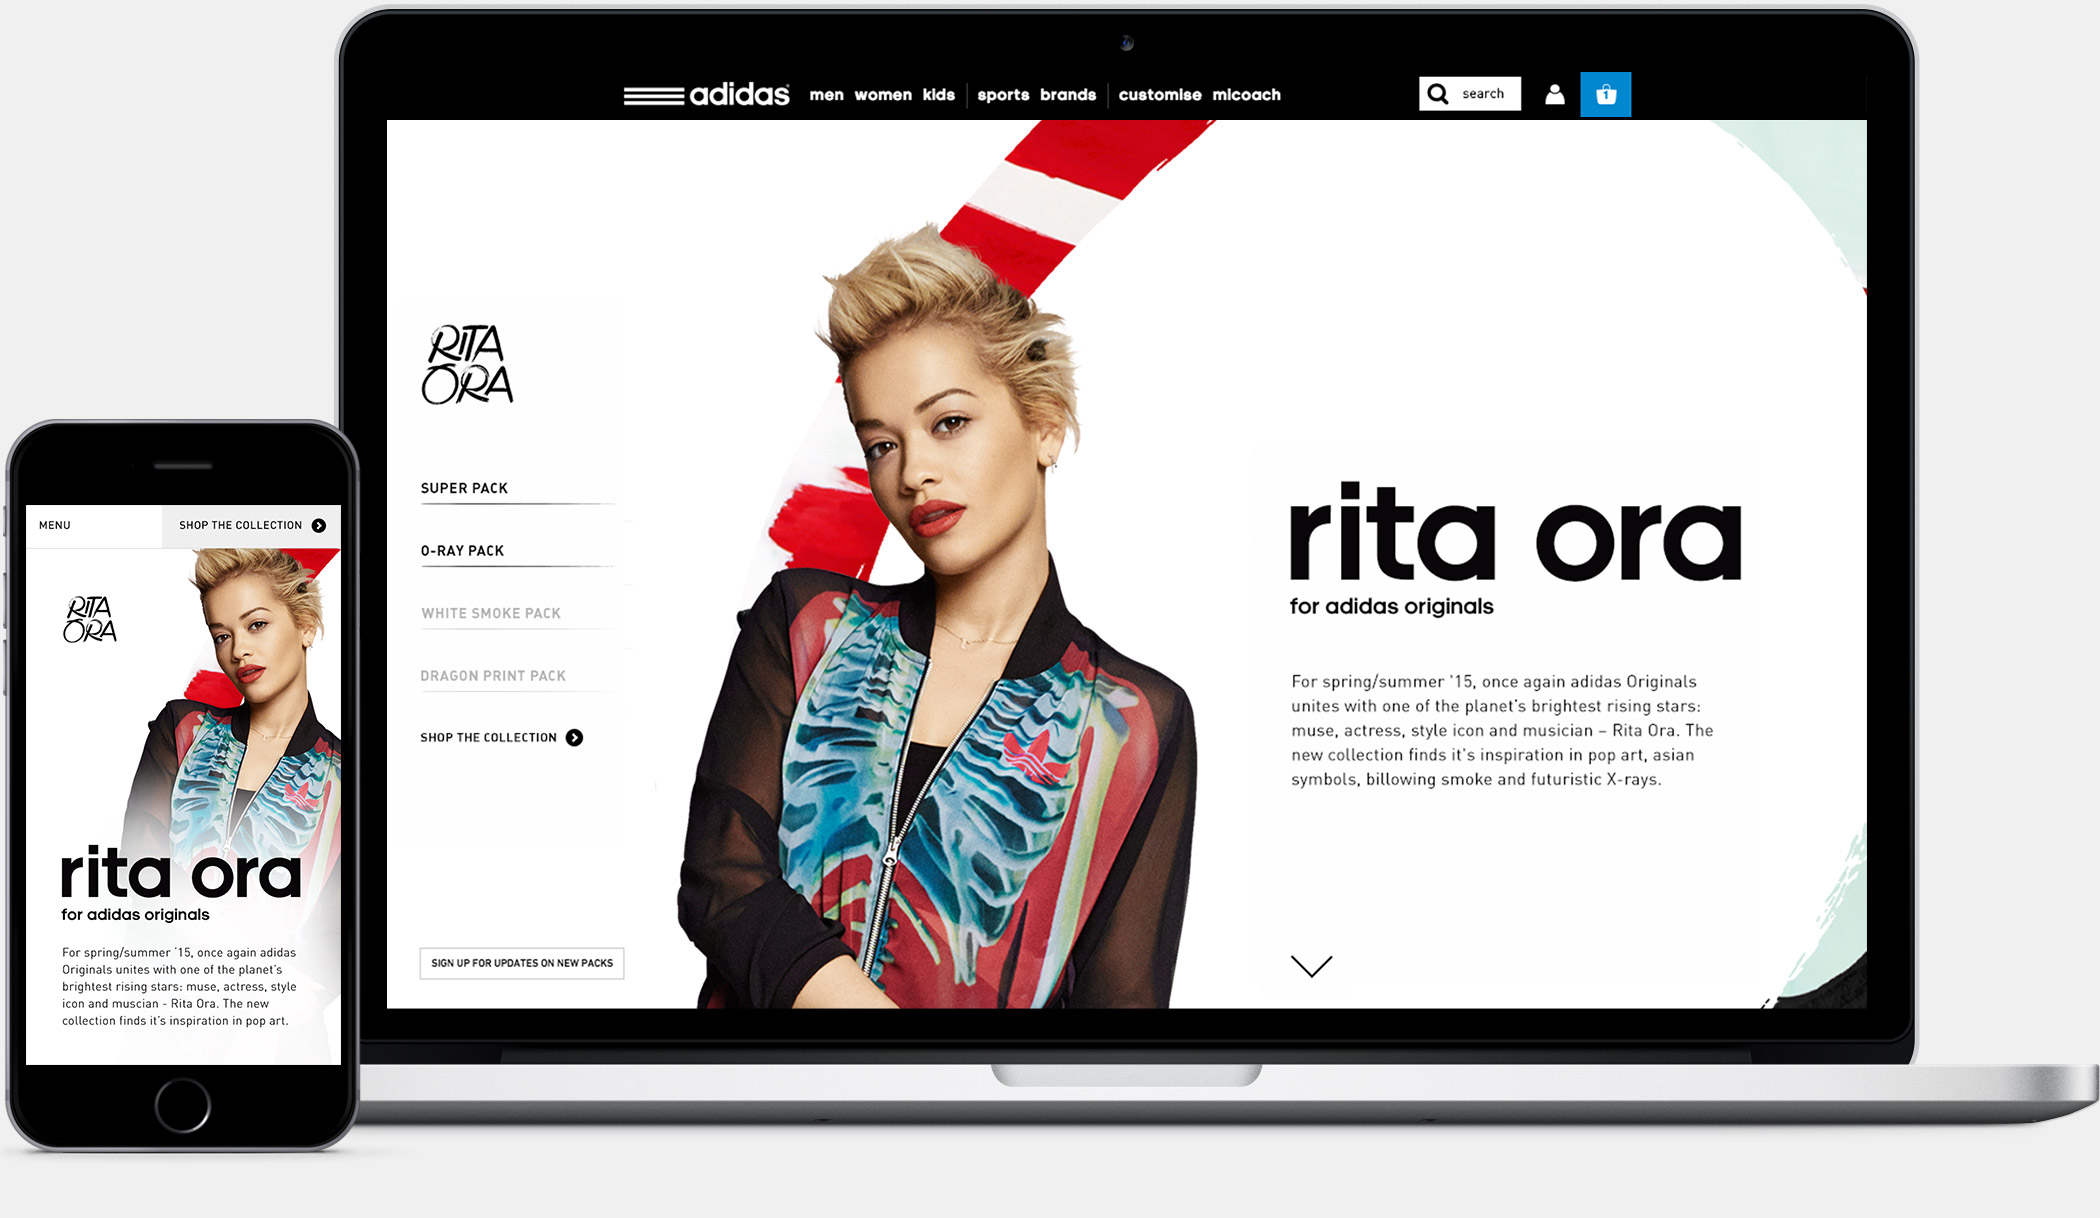 MB_ritaora-lookbook_macbookphone